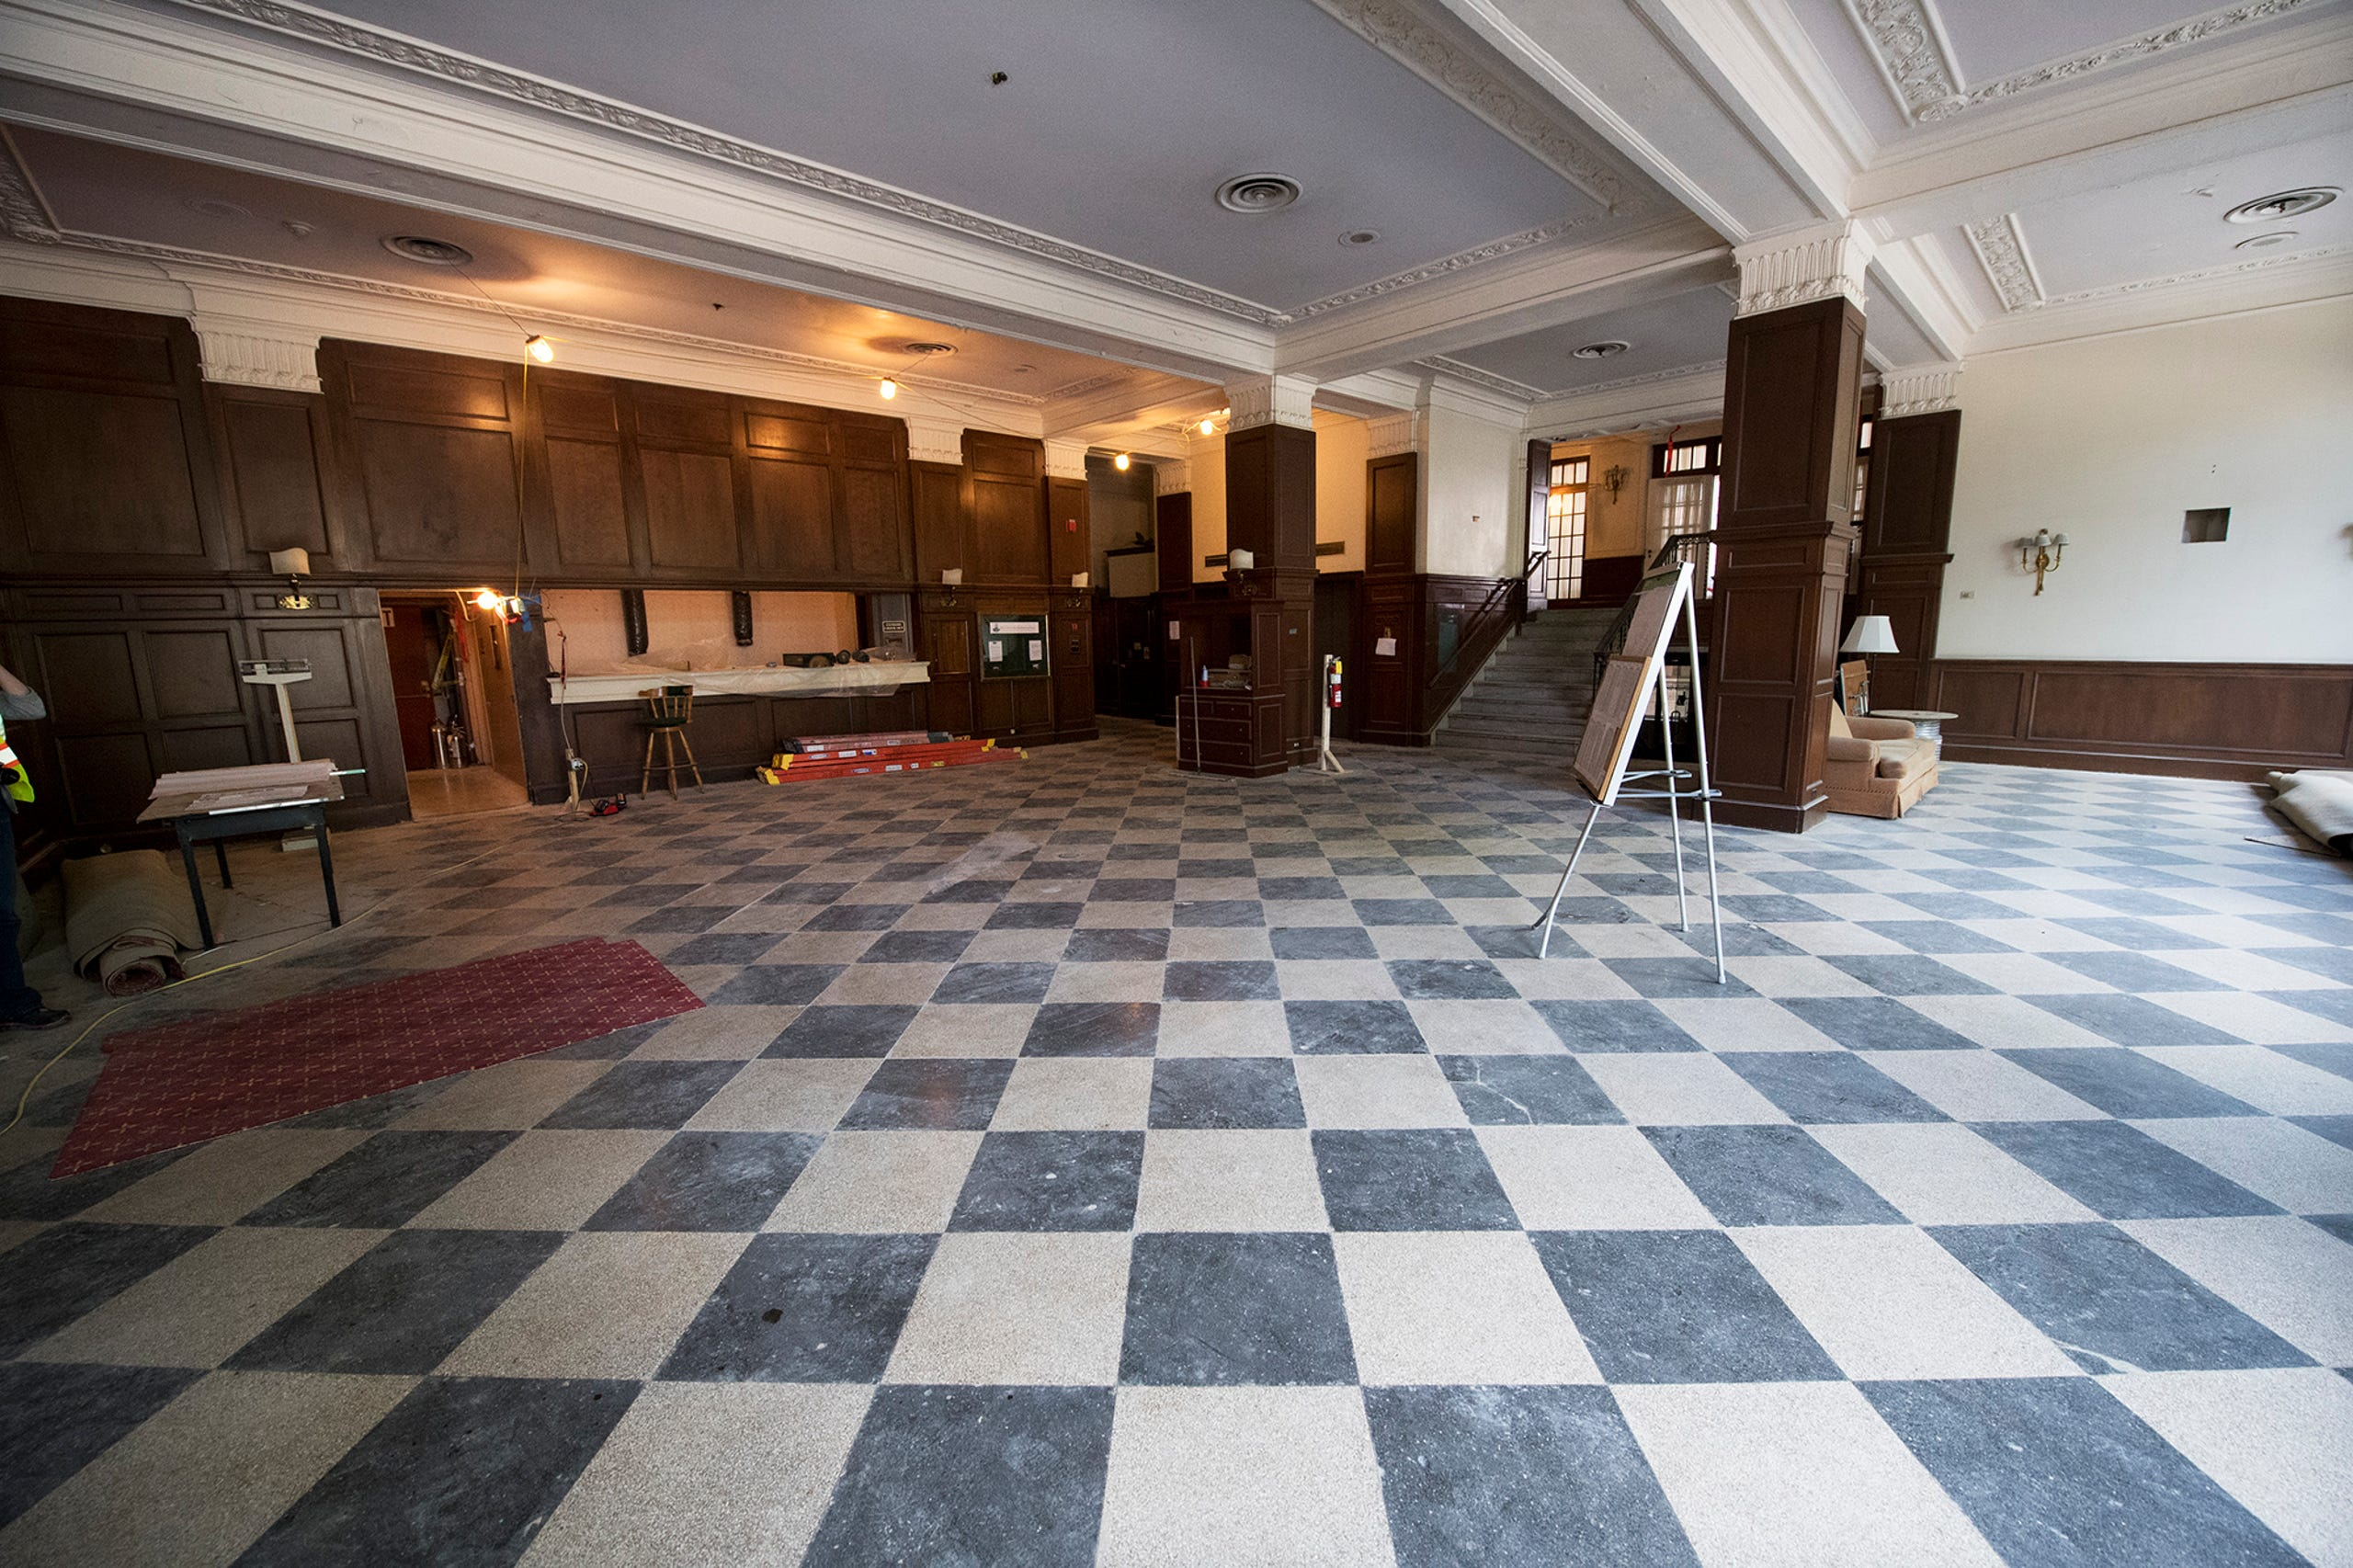 Photos Explore The Gutted Yorktowne Hotel During Construction